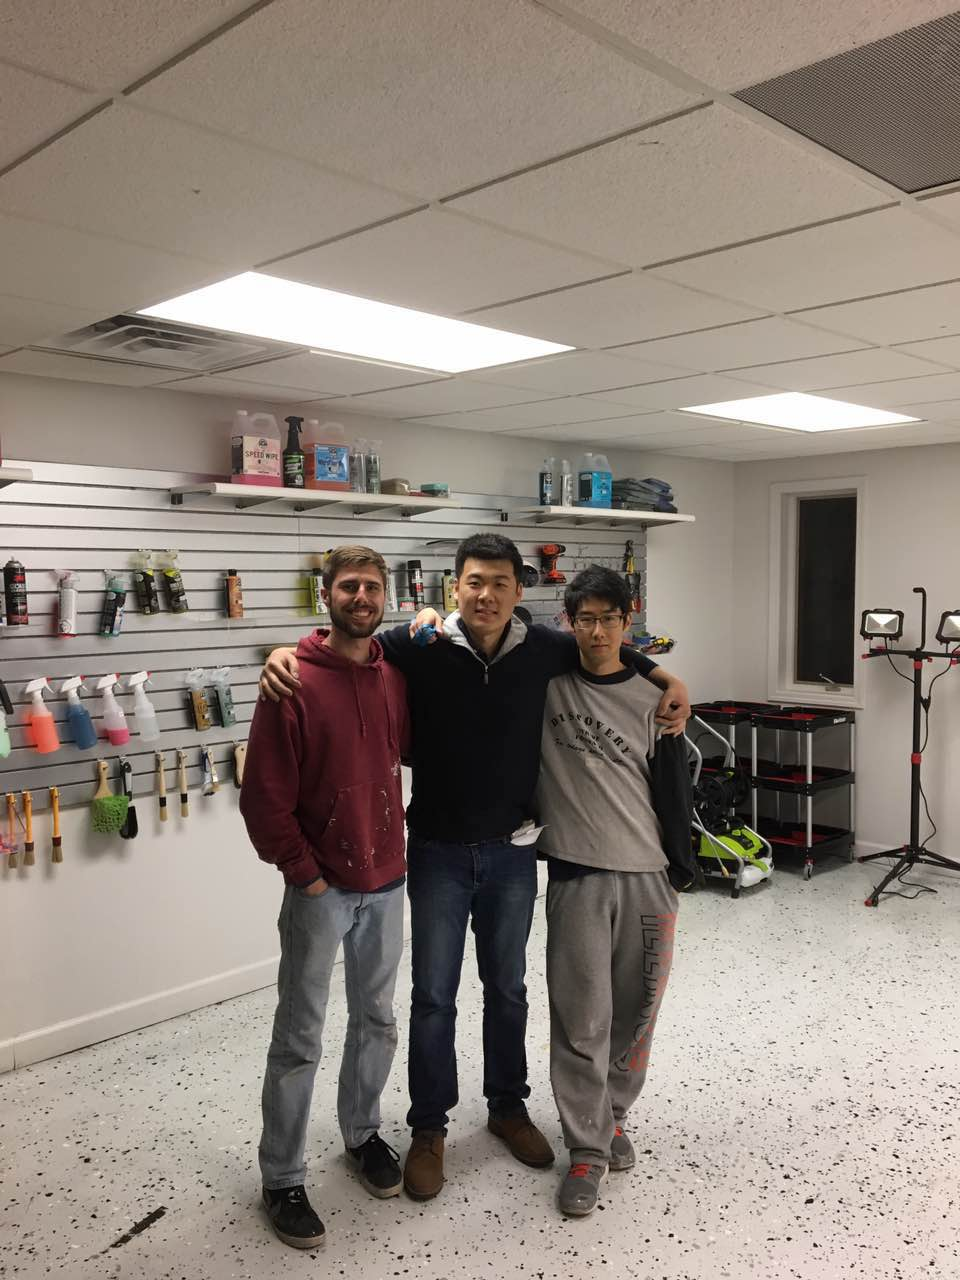 Colin, Yifei and Difu after a night spent building Auto Club Detailing's facility